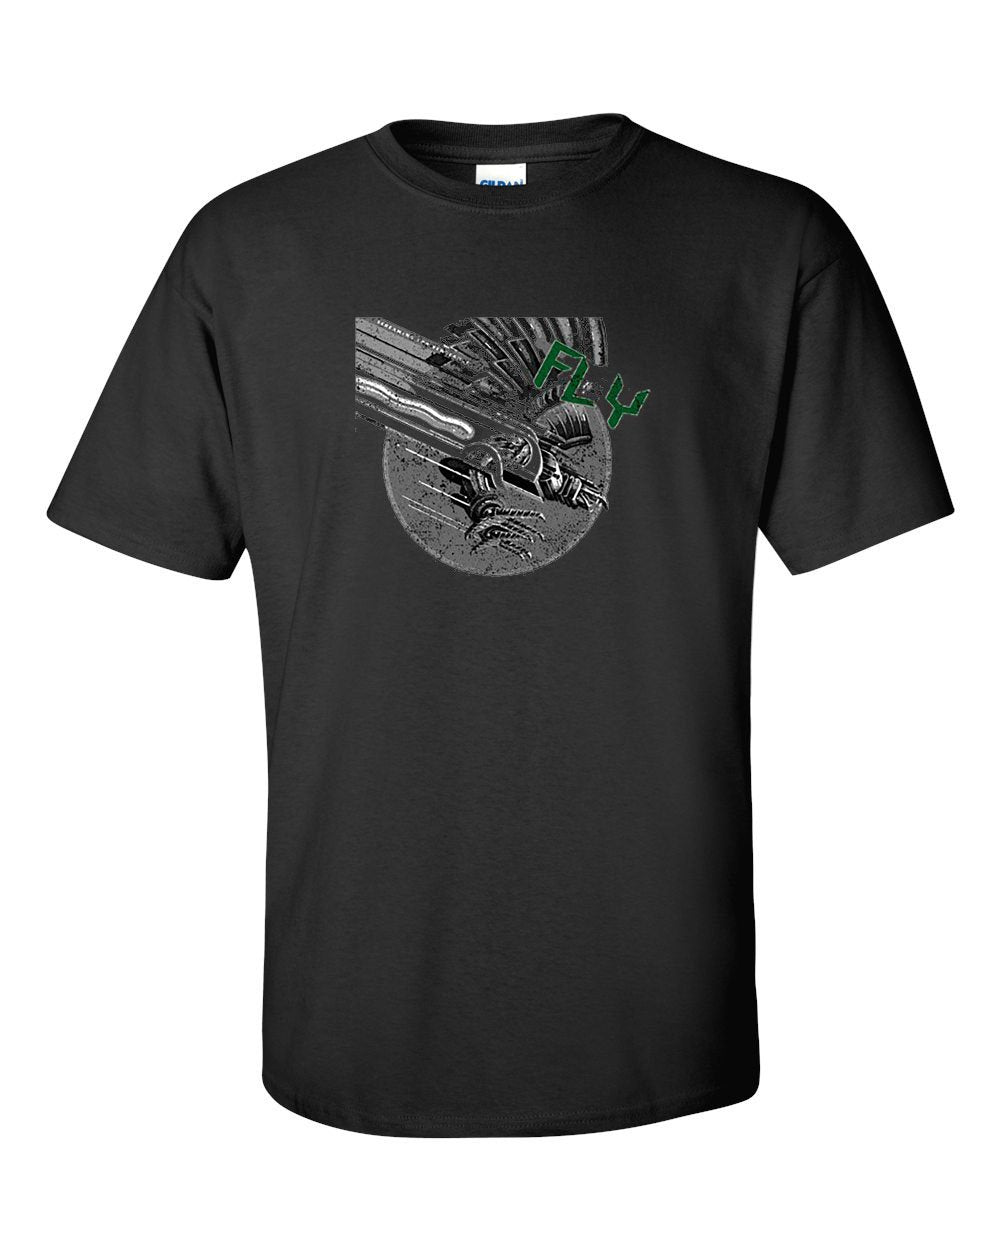 Judas Bird Mens/Unisex T-Shirt